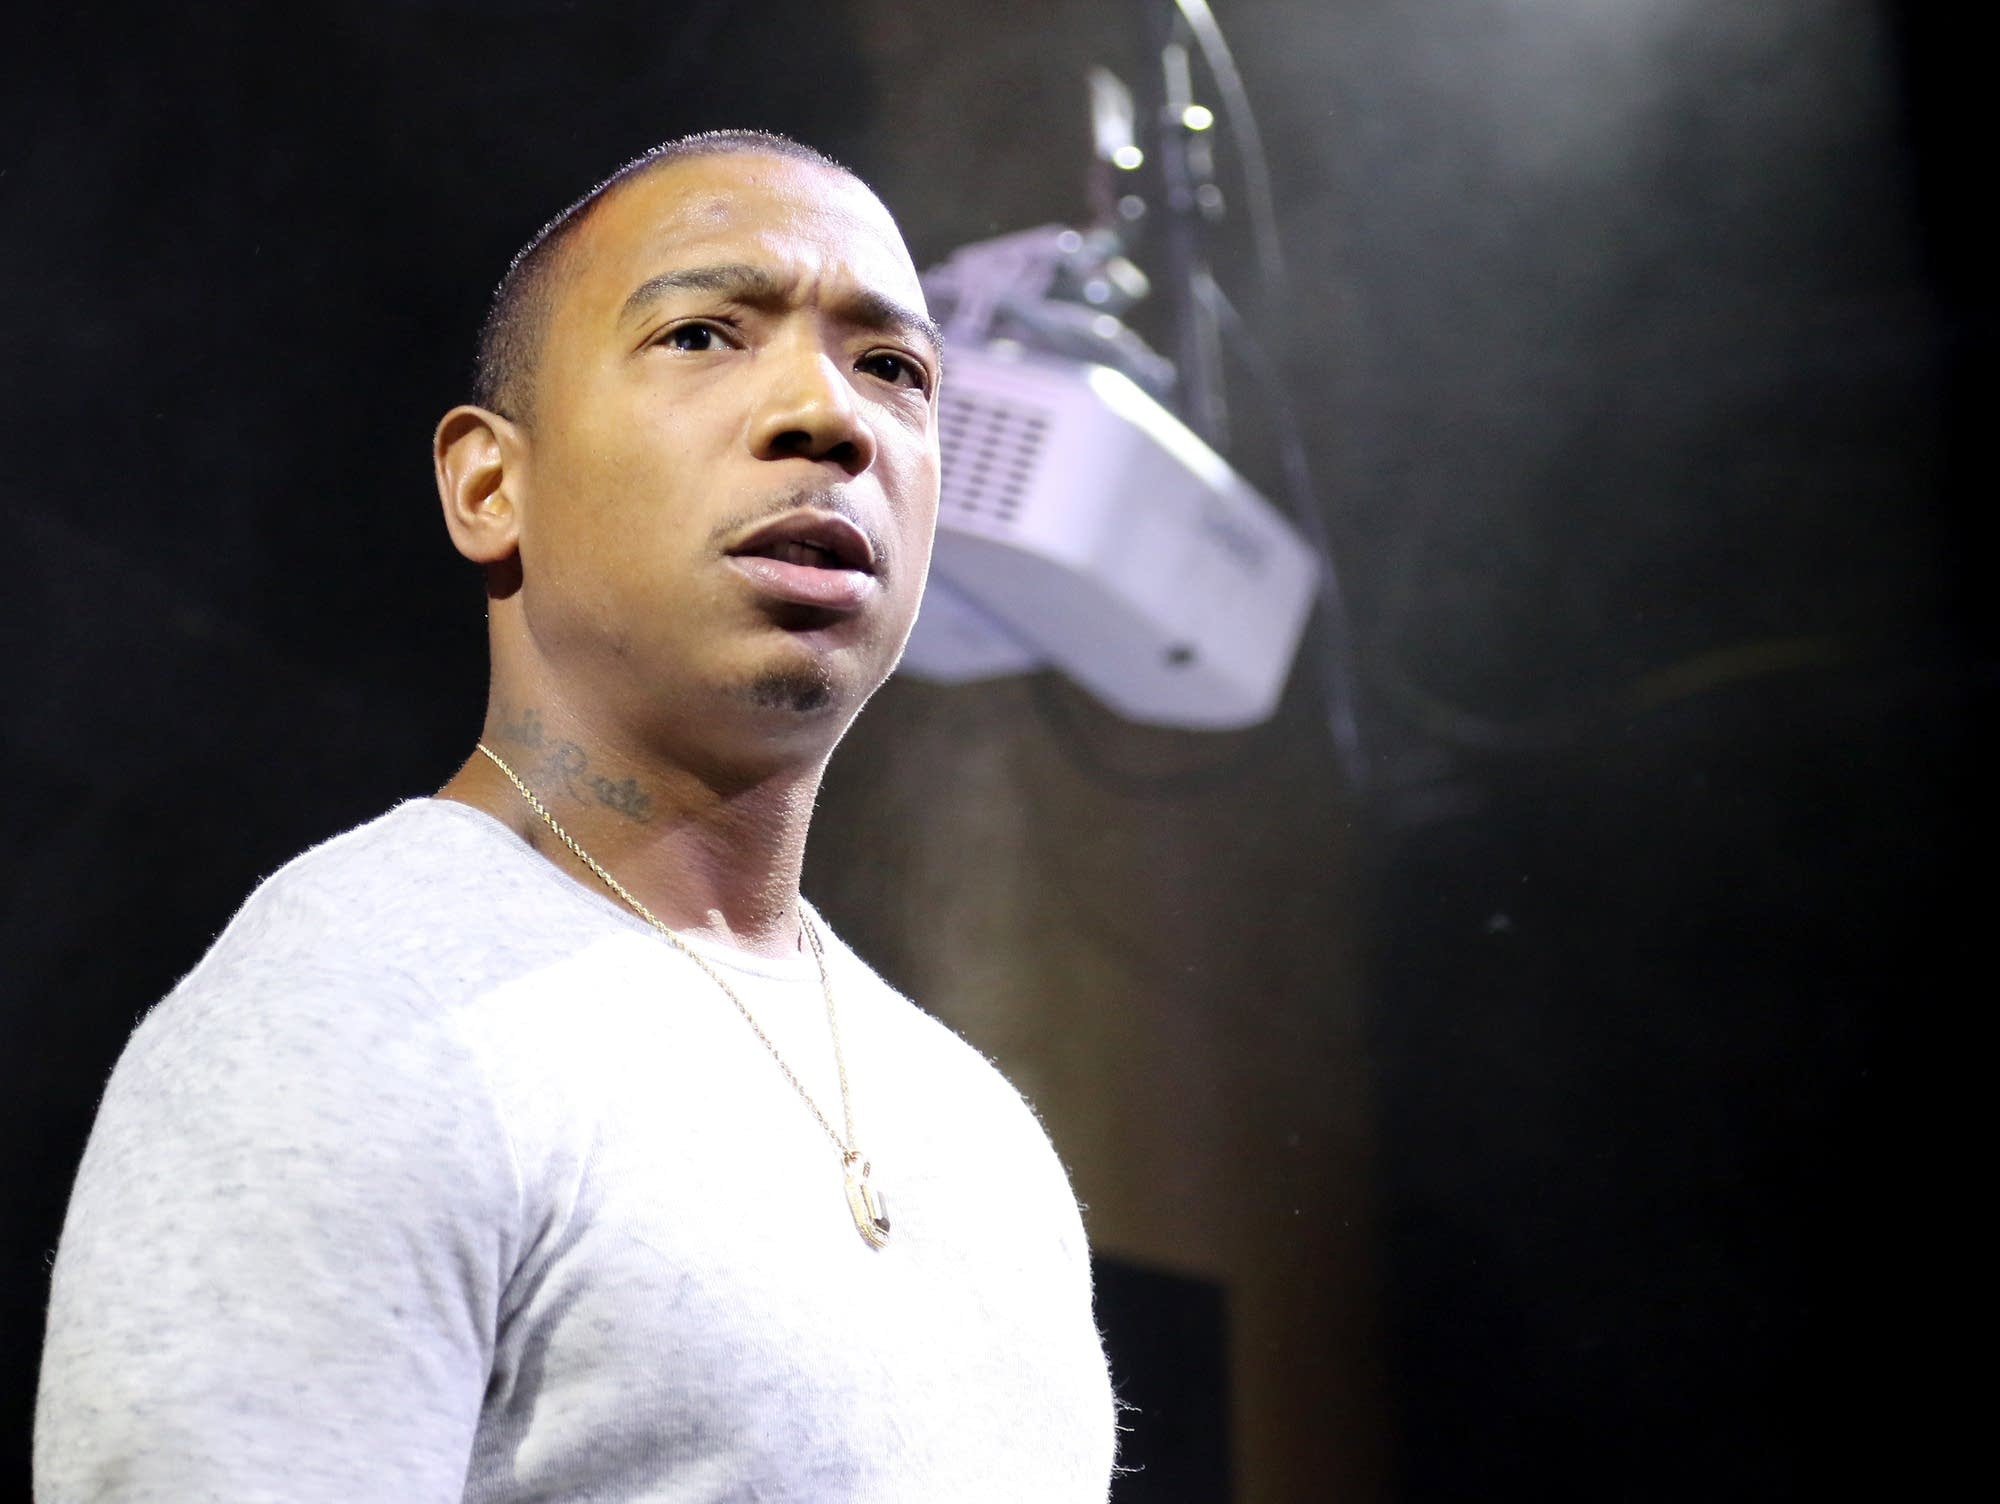 Ja Rule performs in February 2017